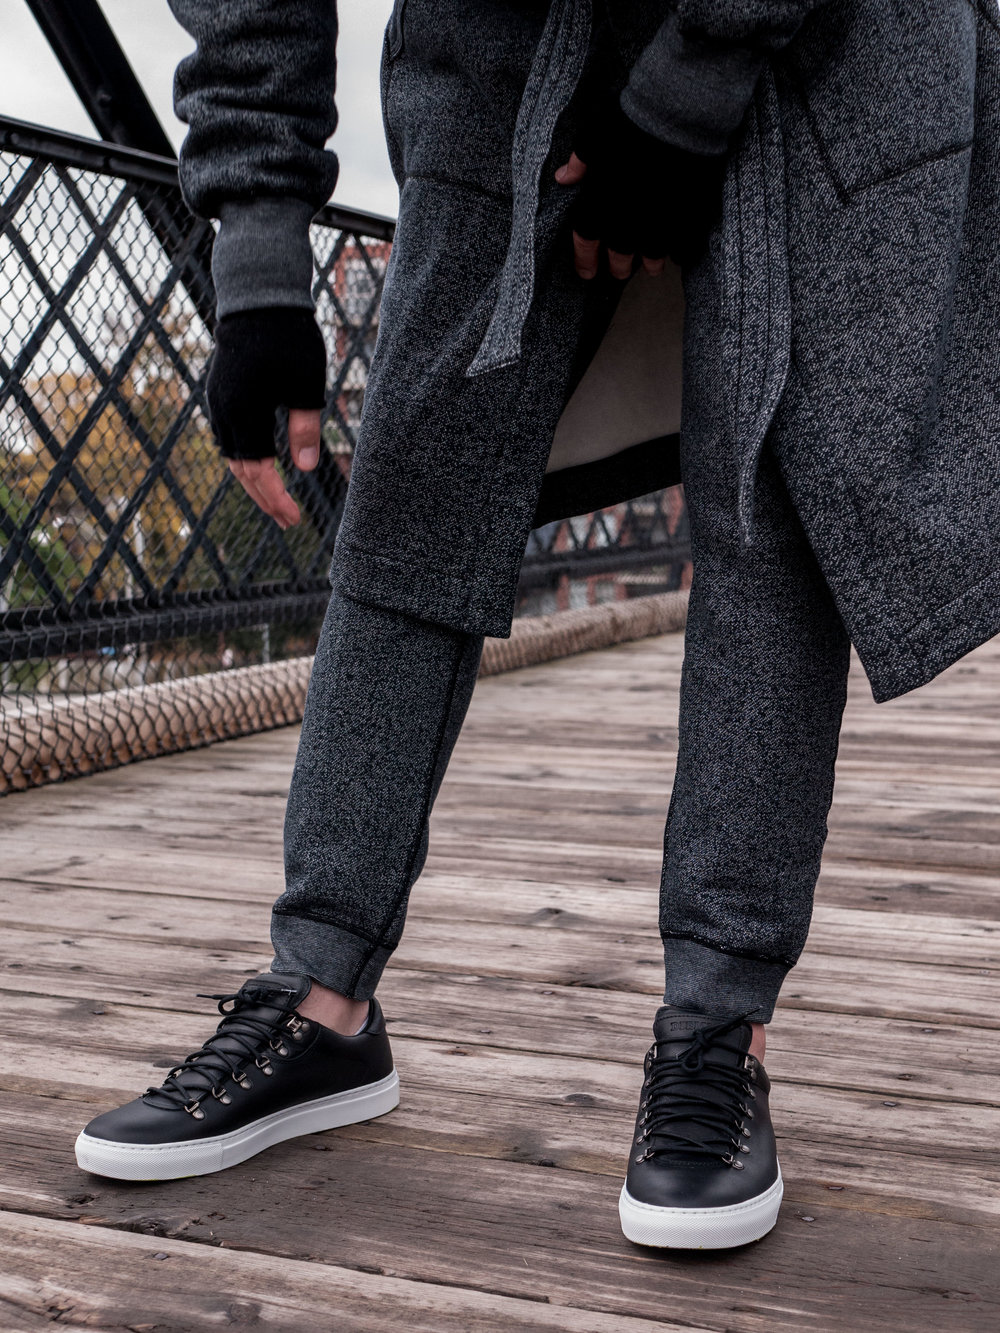 014    Reigning Champ Bathrobe,  Crewneck  & Sweats    Diemme  Sneakers     Outclass Gloves